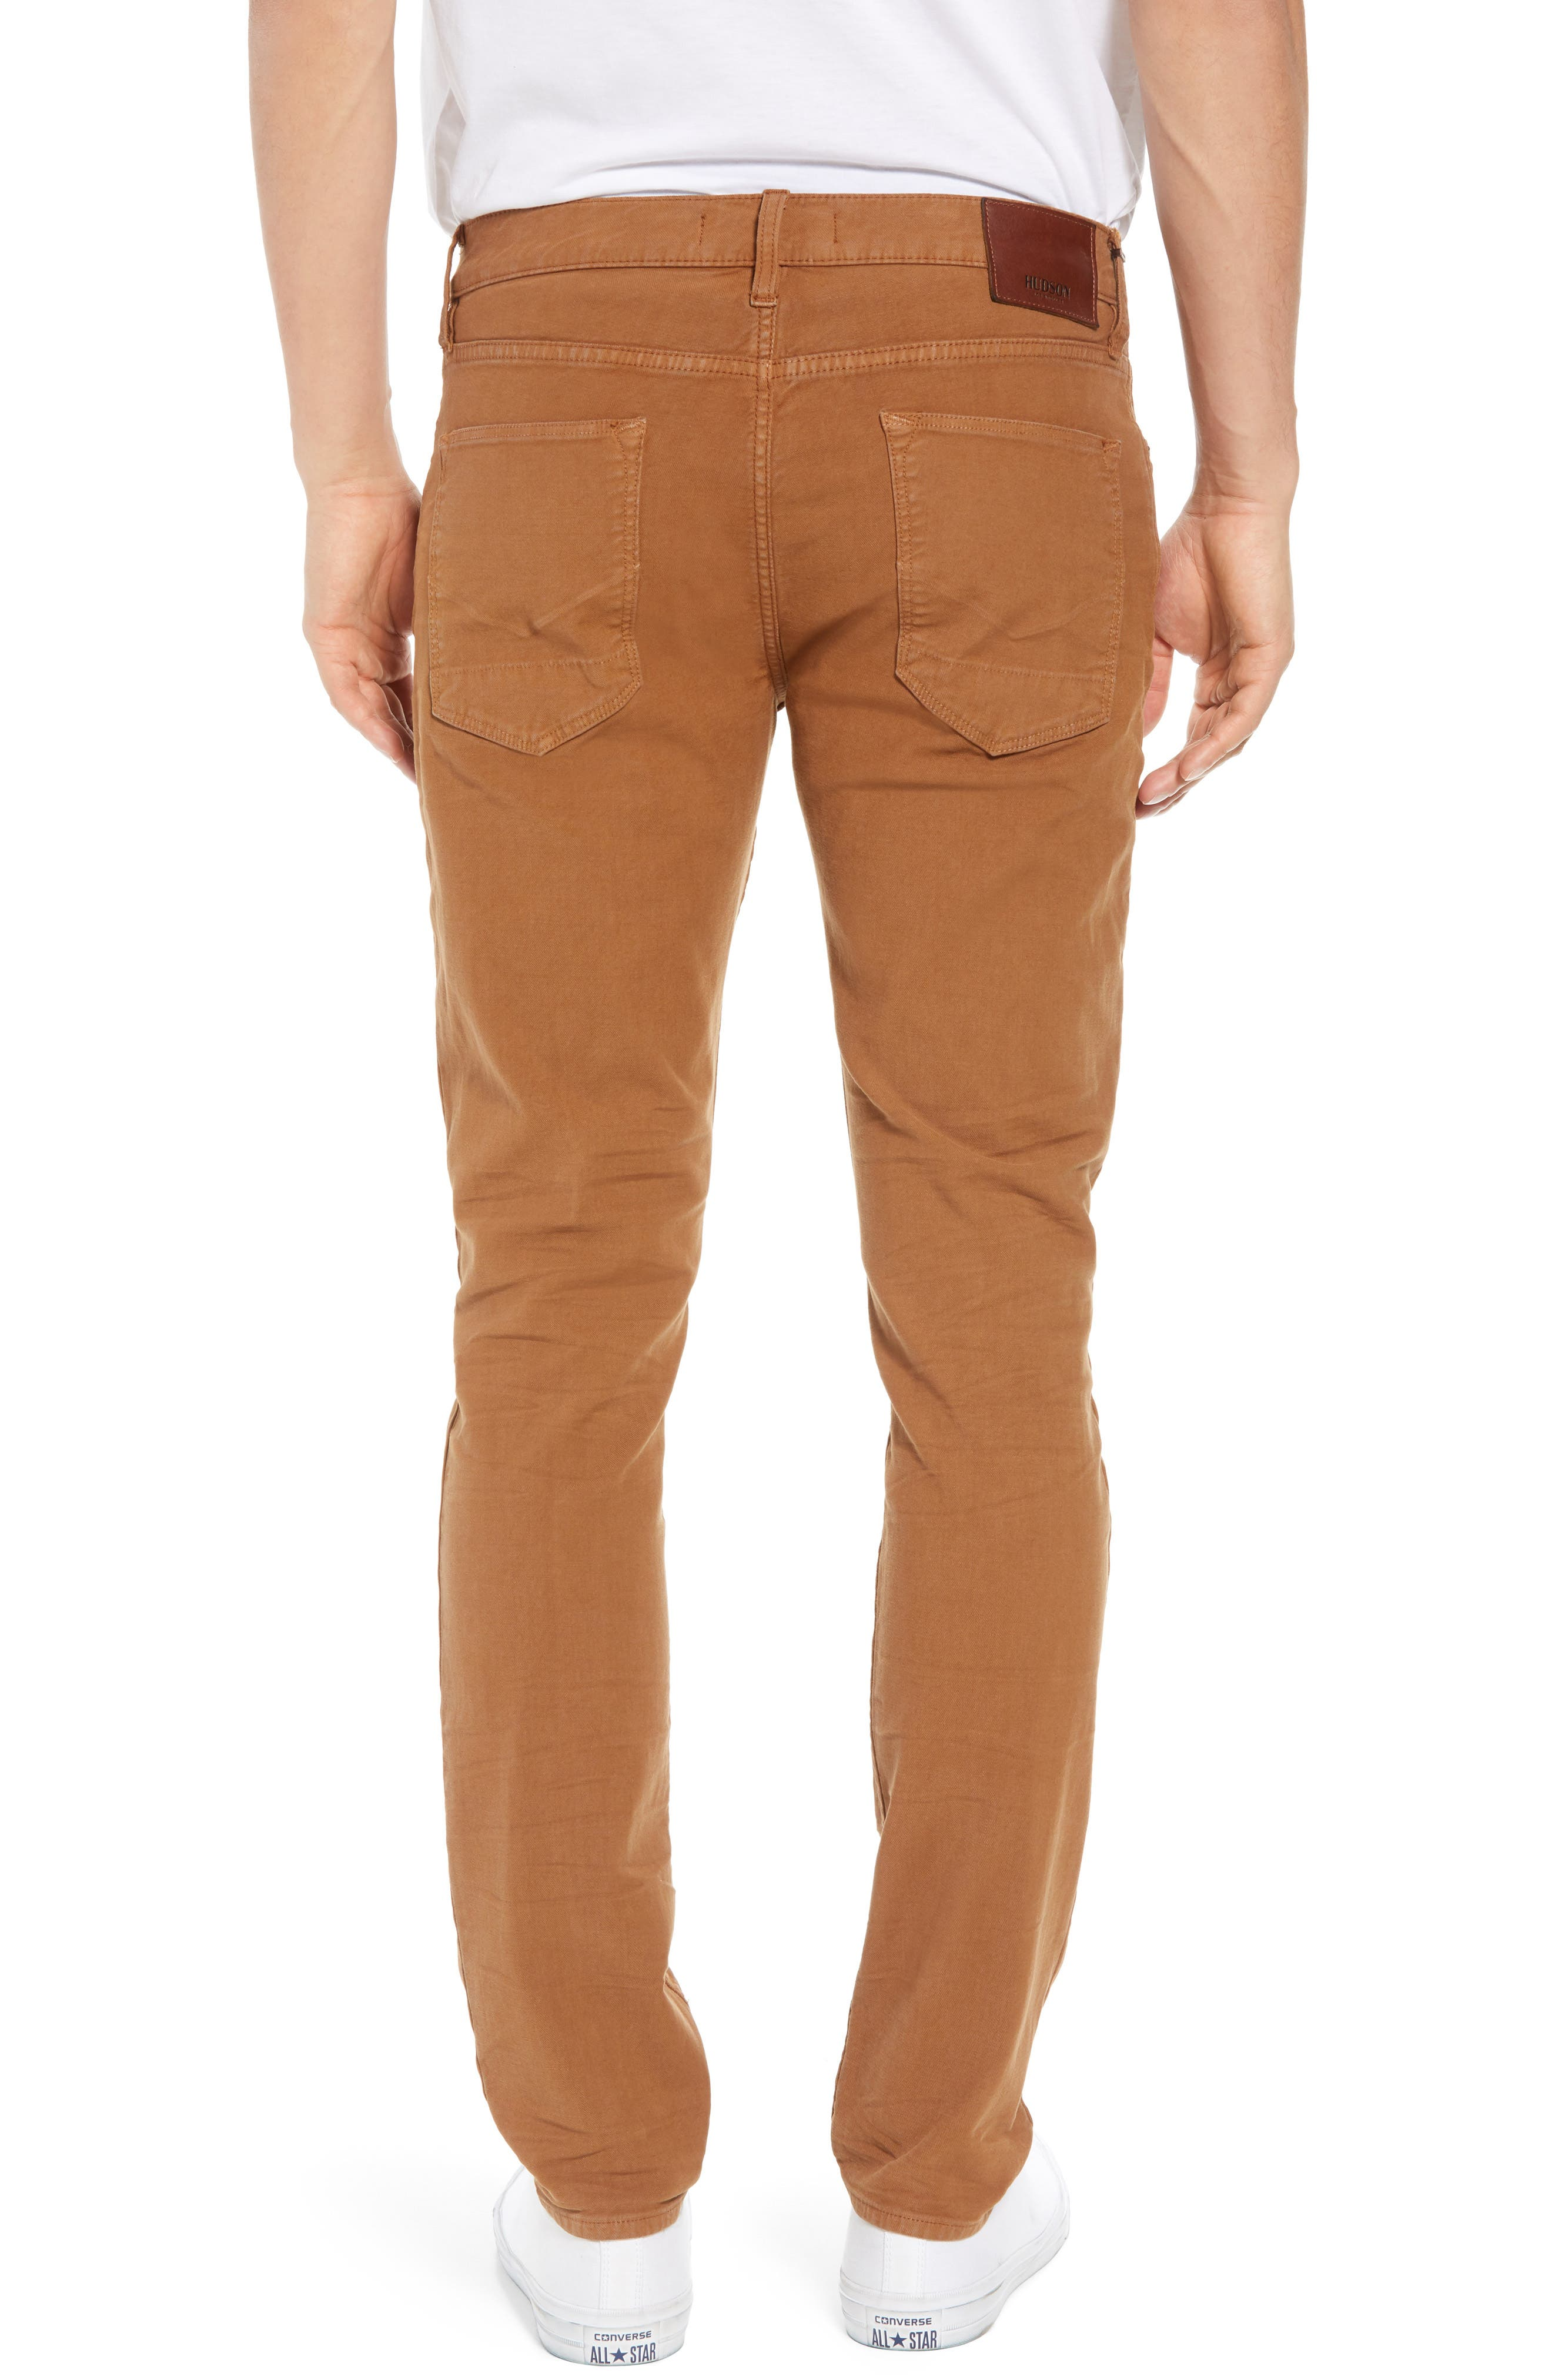 Axl Skinny Fit Jeans,                             Alternate thumbnail 2, color,                             SIENNA